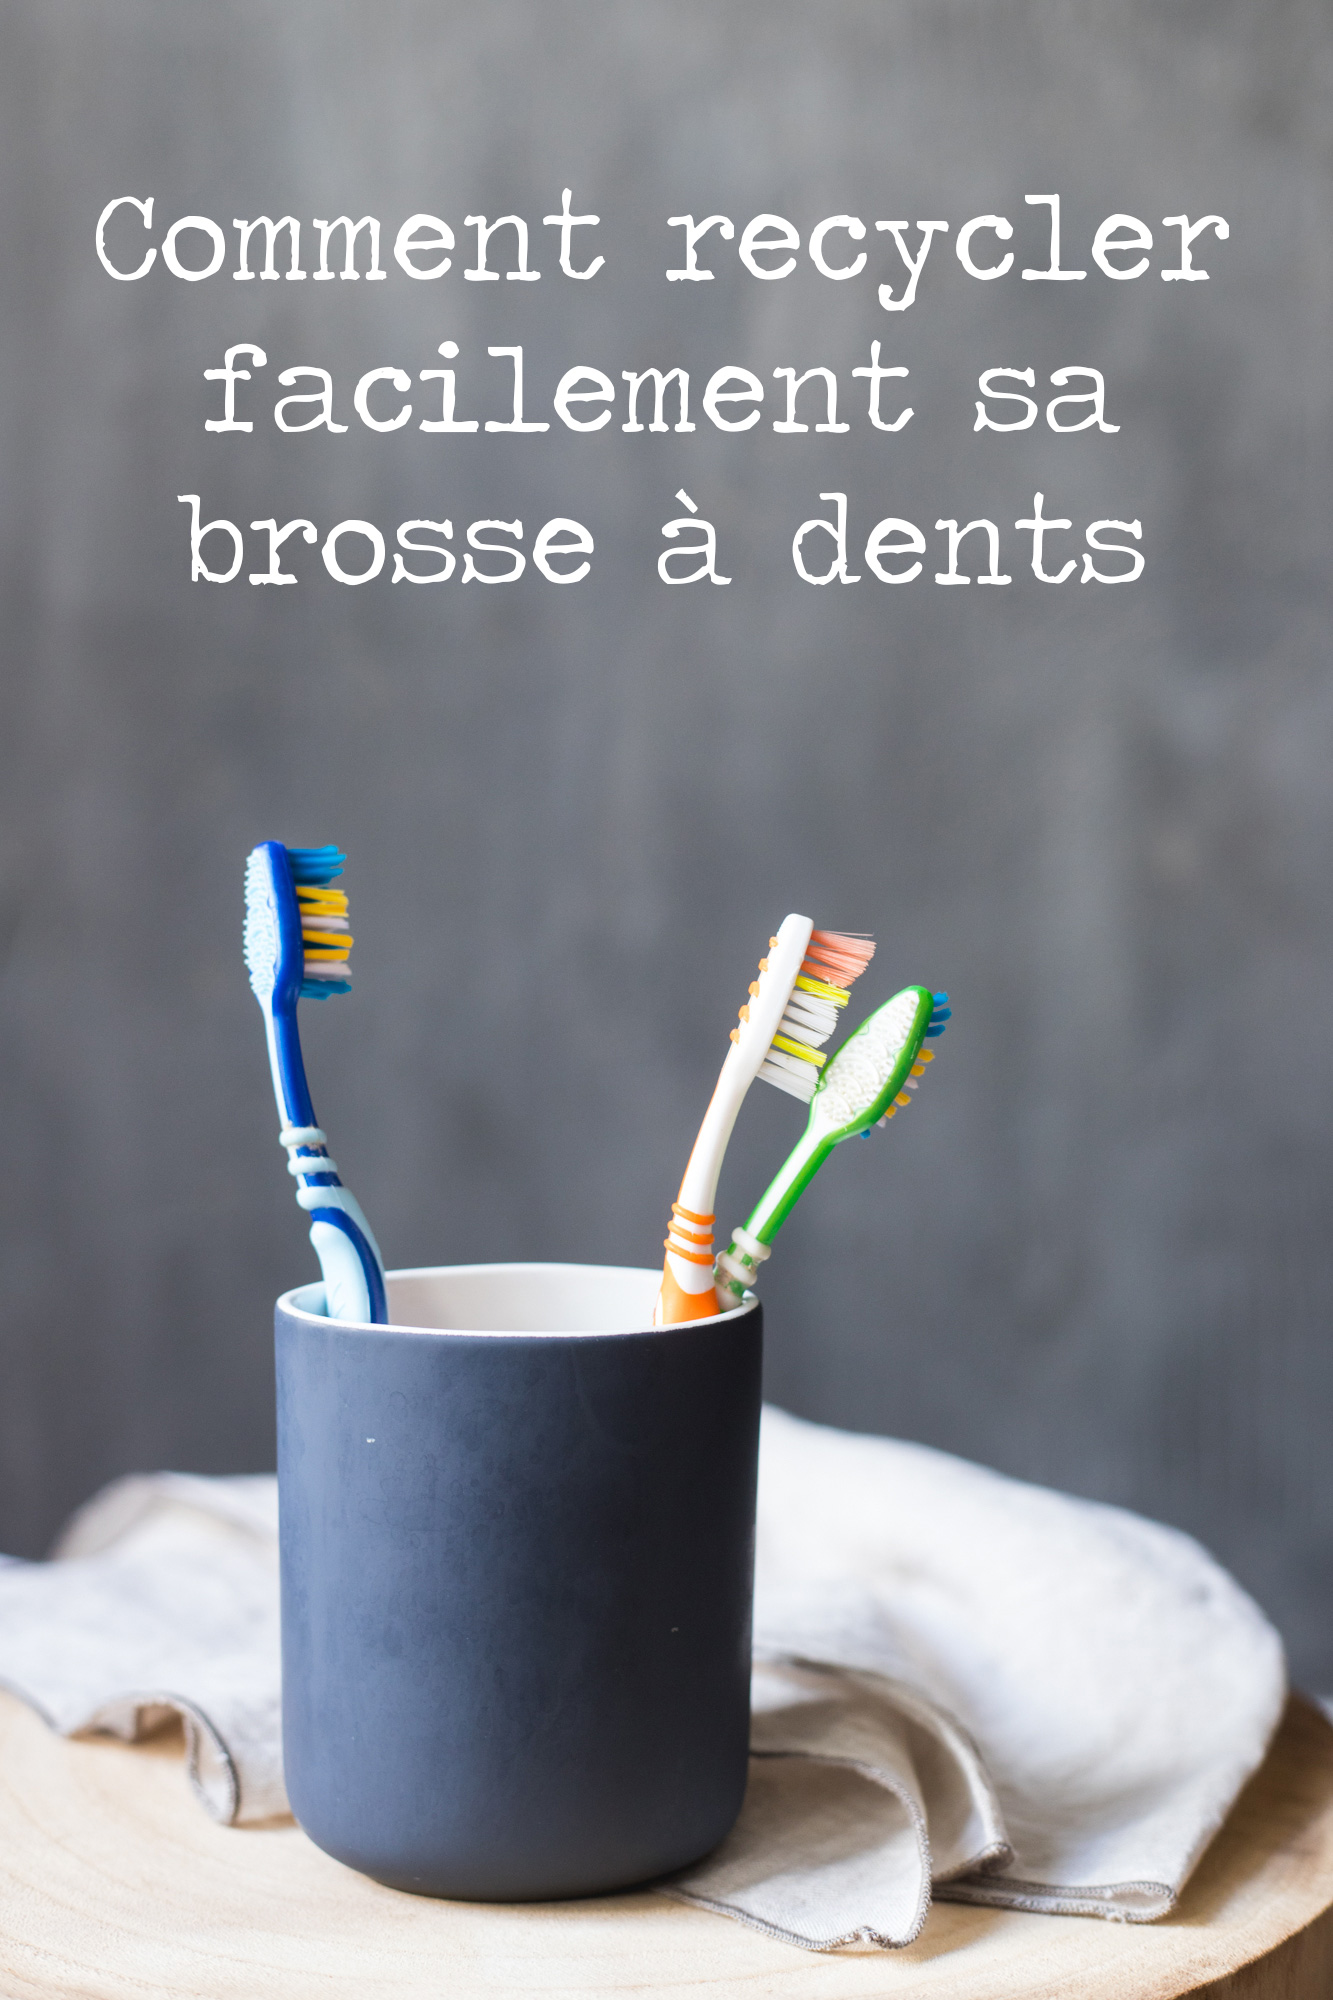 recyclage brosses à dents